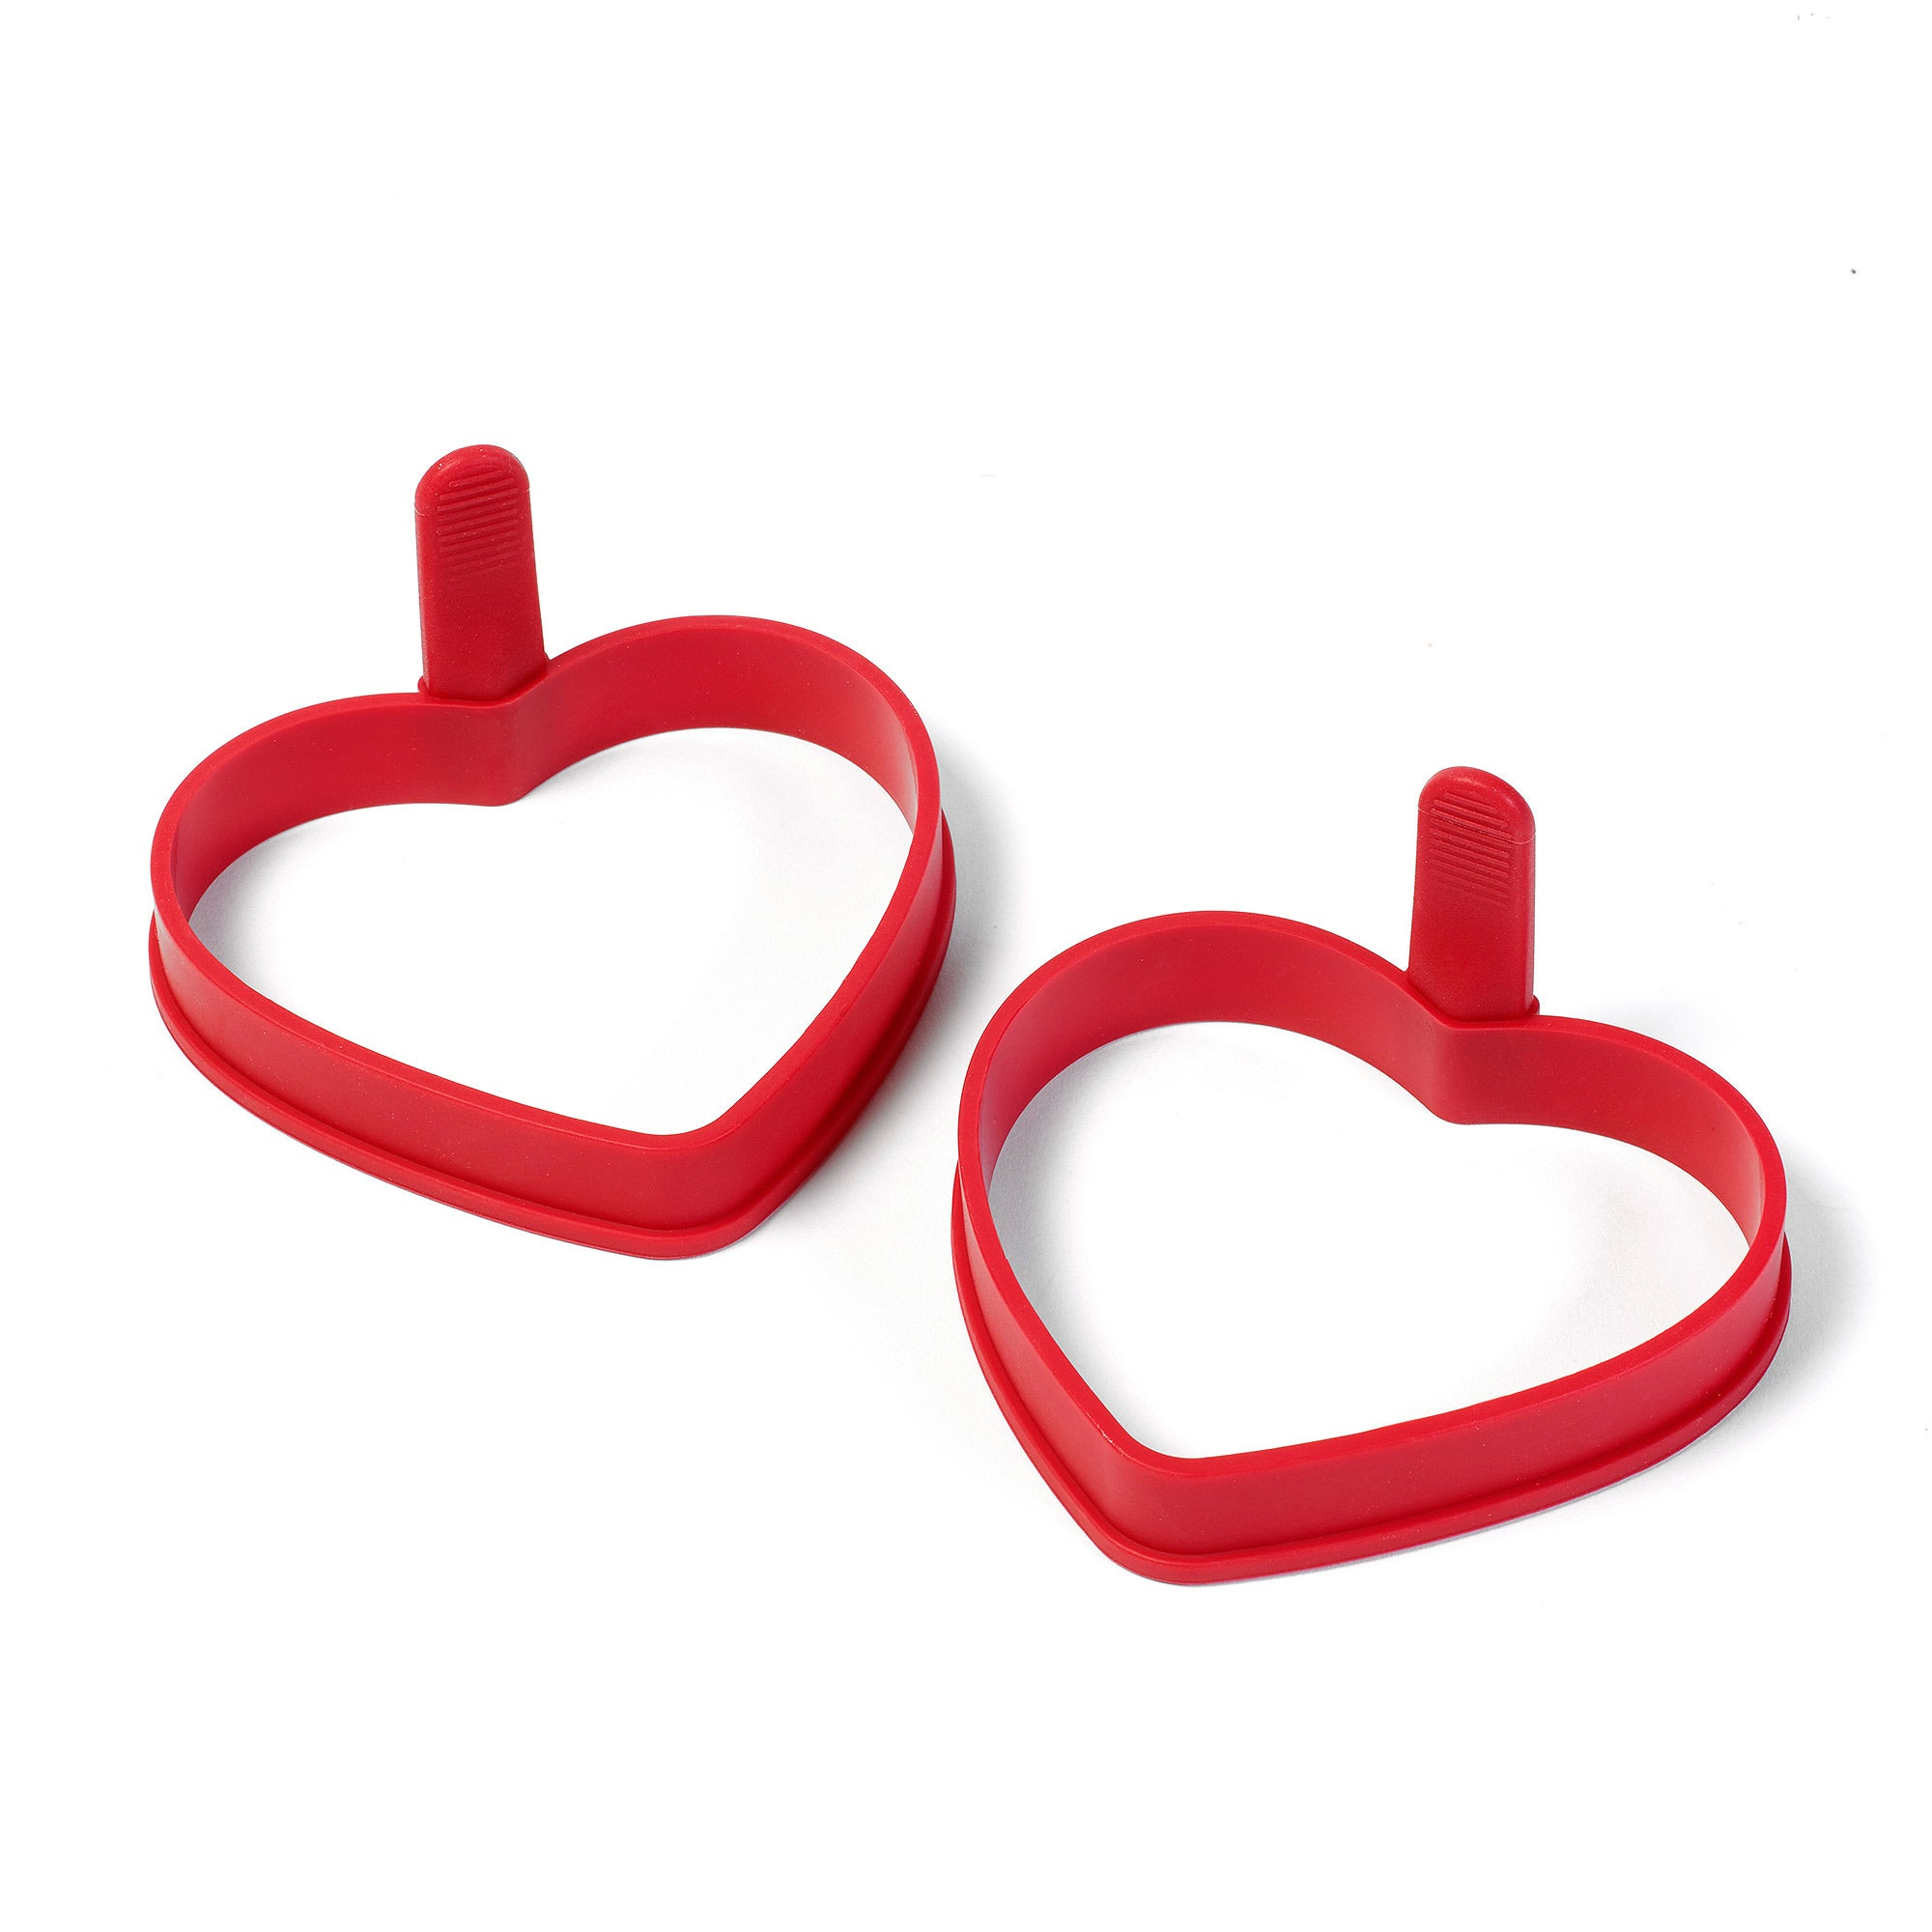 Image of 2 Heart Shaped Silicone Egg Rings Red